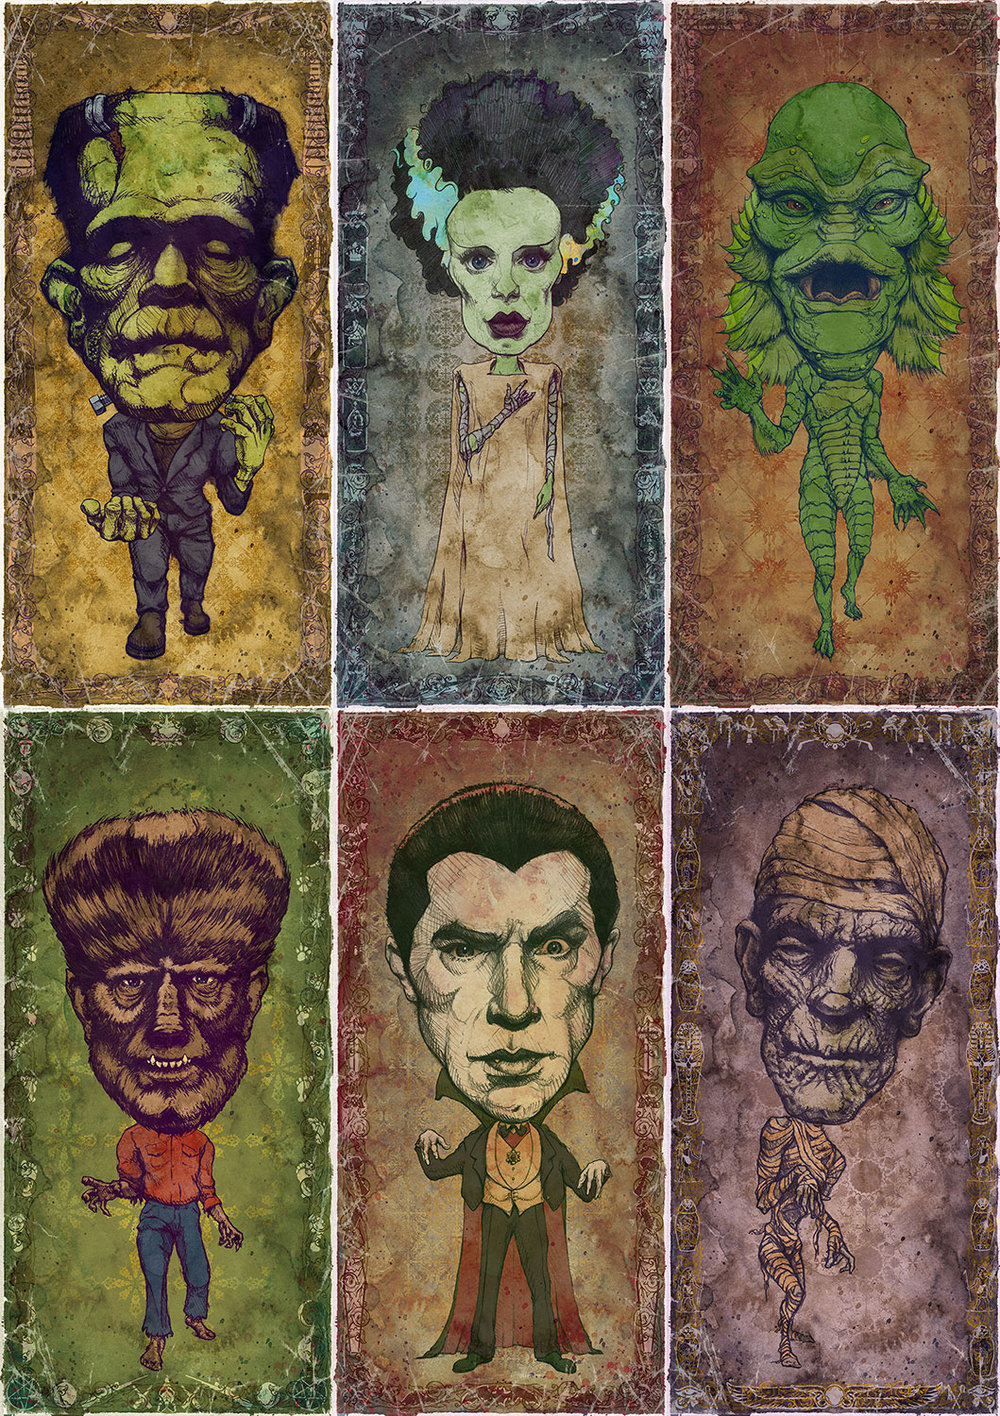 """Set of 6 Classic Monster Art Prints    6 individual 9"""" x 18"""" Prints    Each signed and numbered on archival paper    $116 ($10 Savings!)    Click image to purchase"""